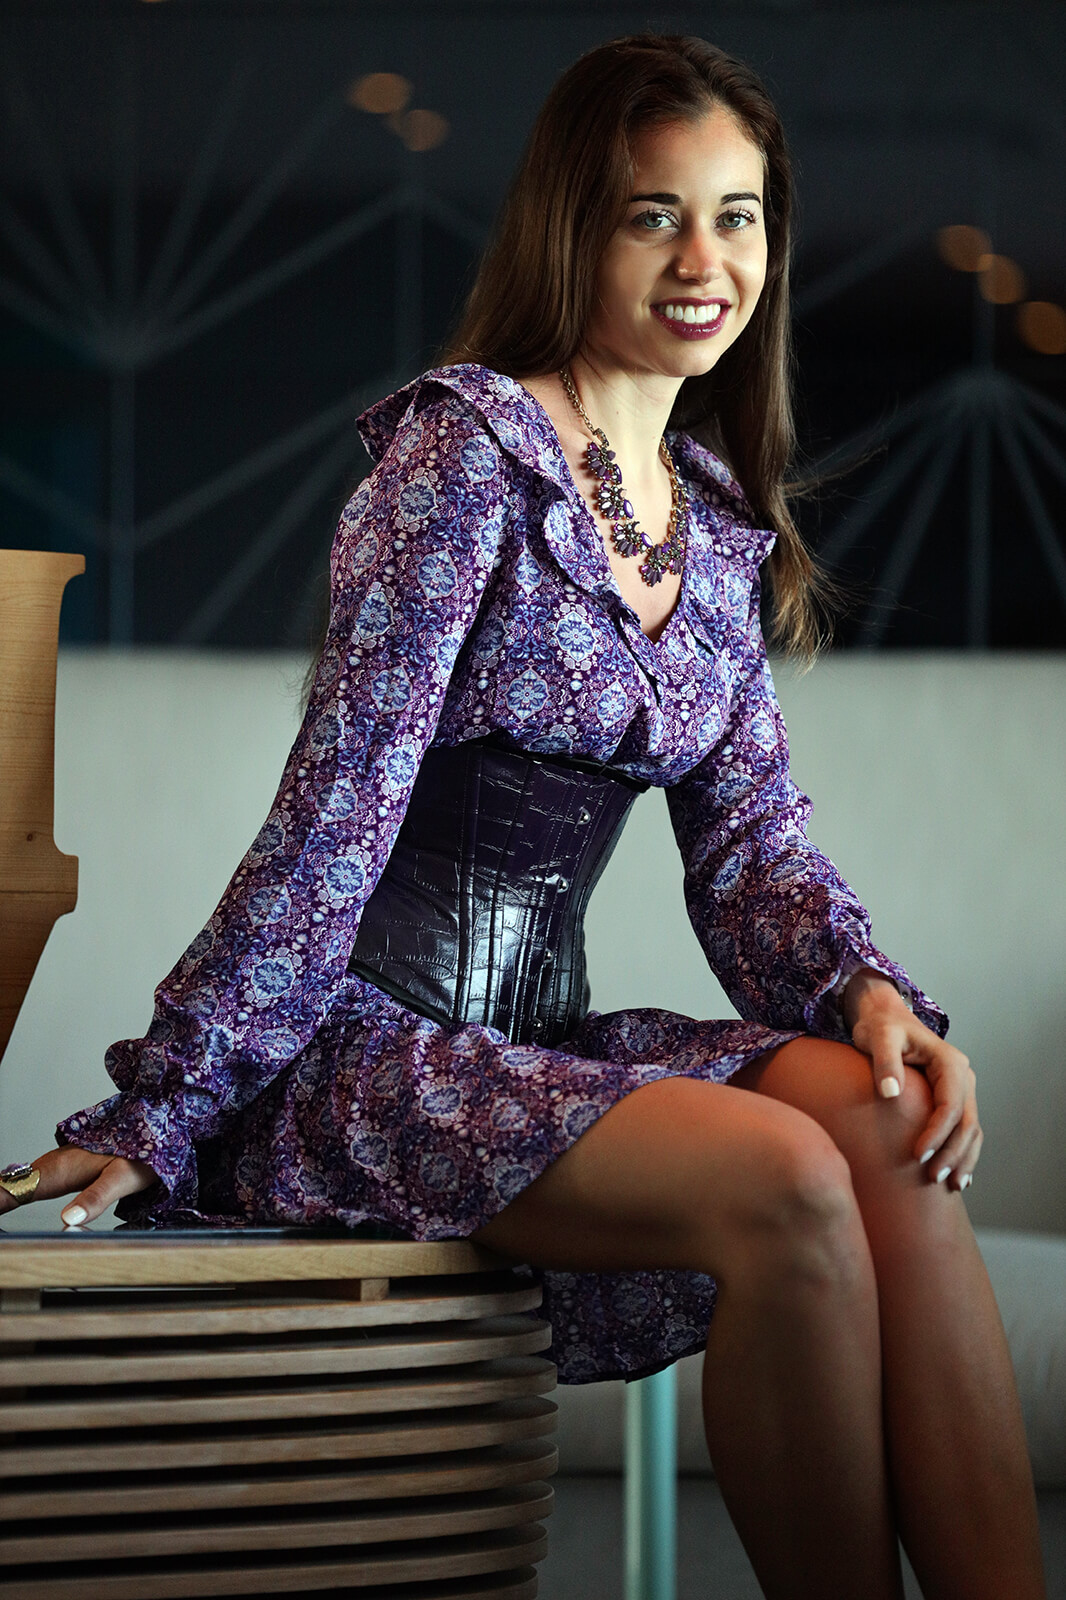 Stella in underbust corset and blue dress sitting on wooden coffee table